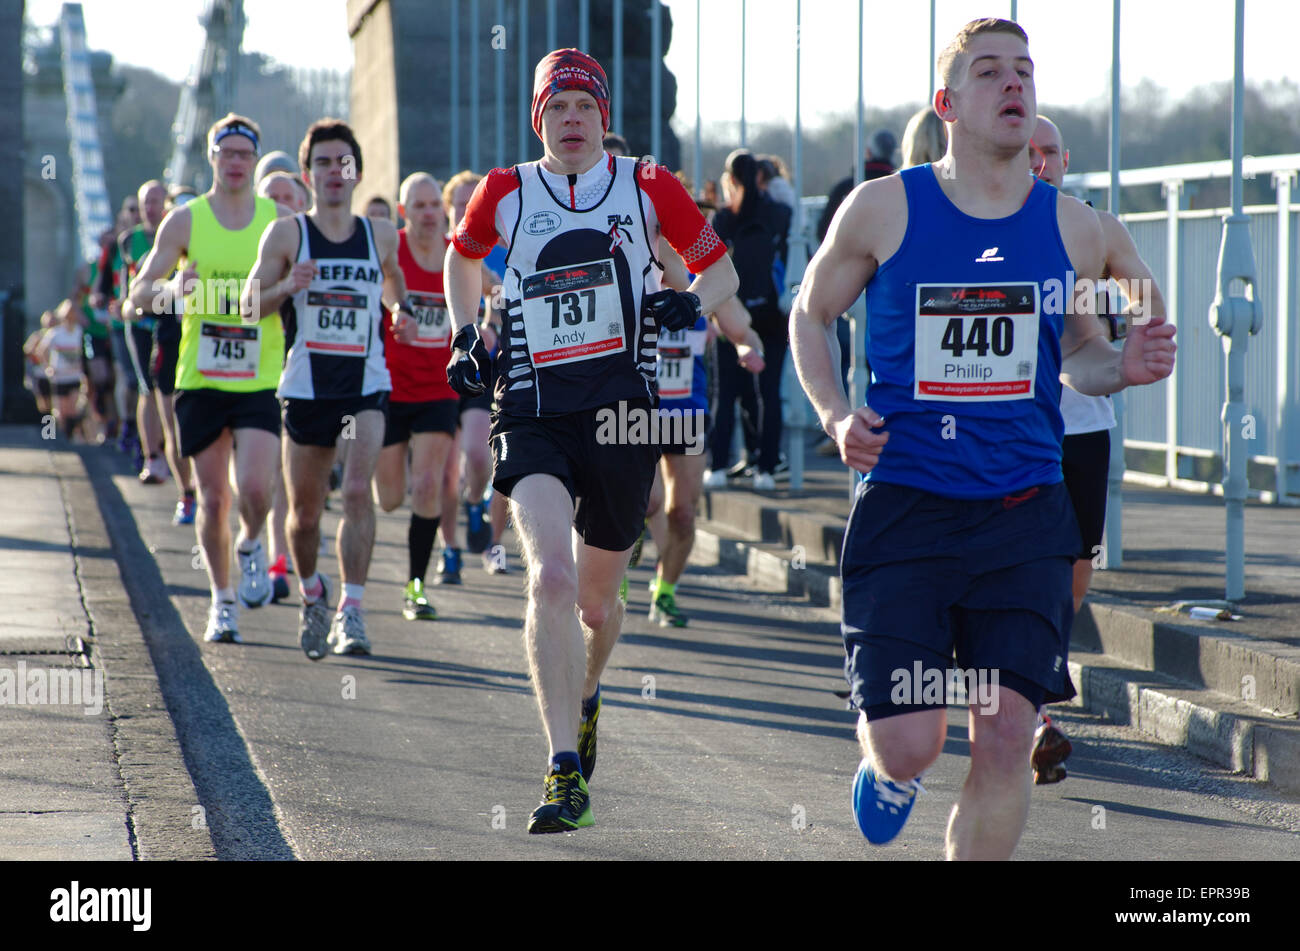 Runners,The Island Race, Half Marathon, Menai Bridge, Anglesey - Stock Image